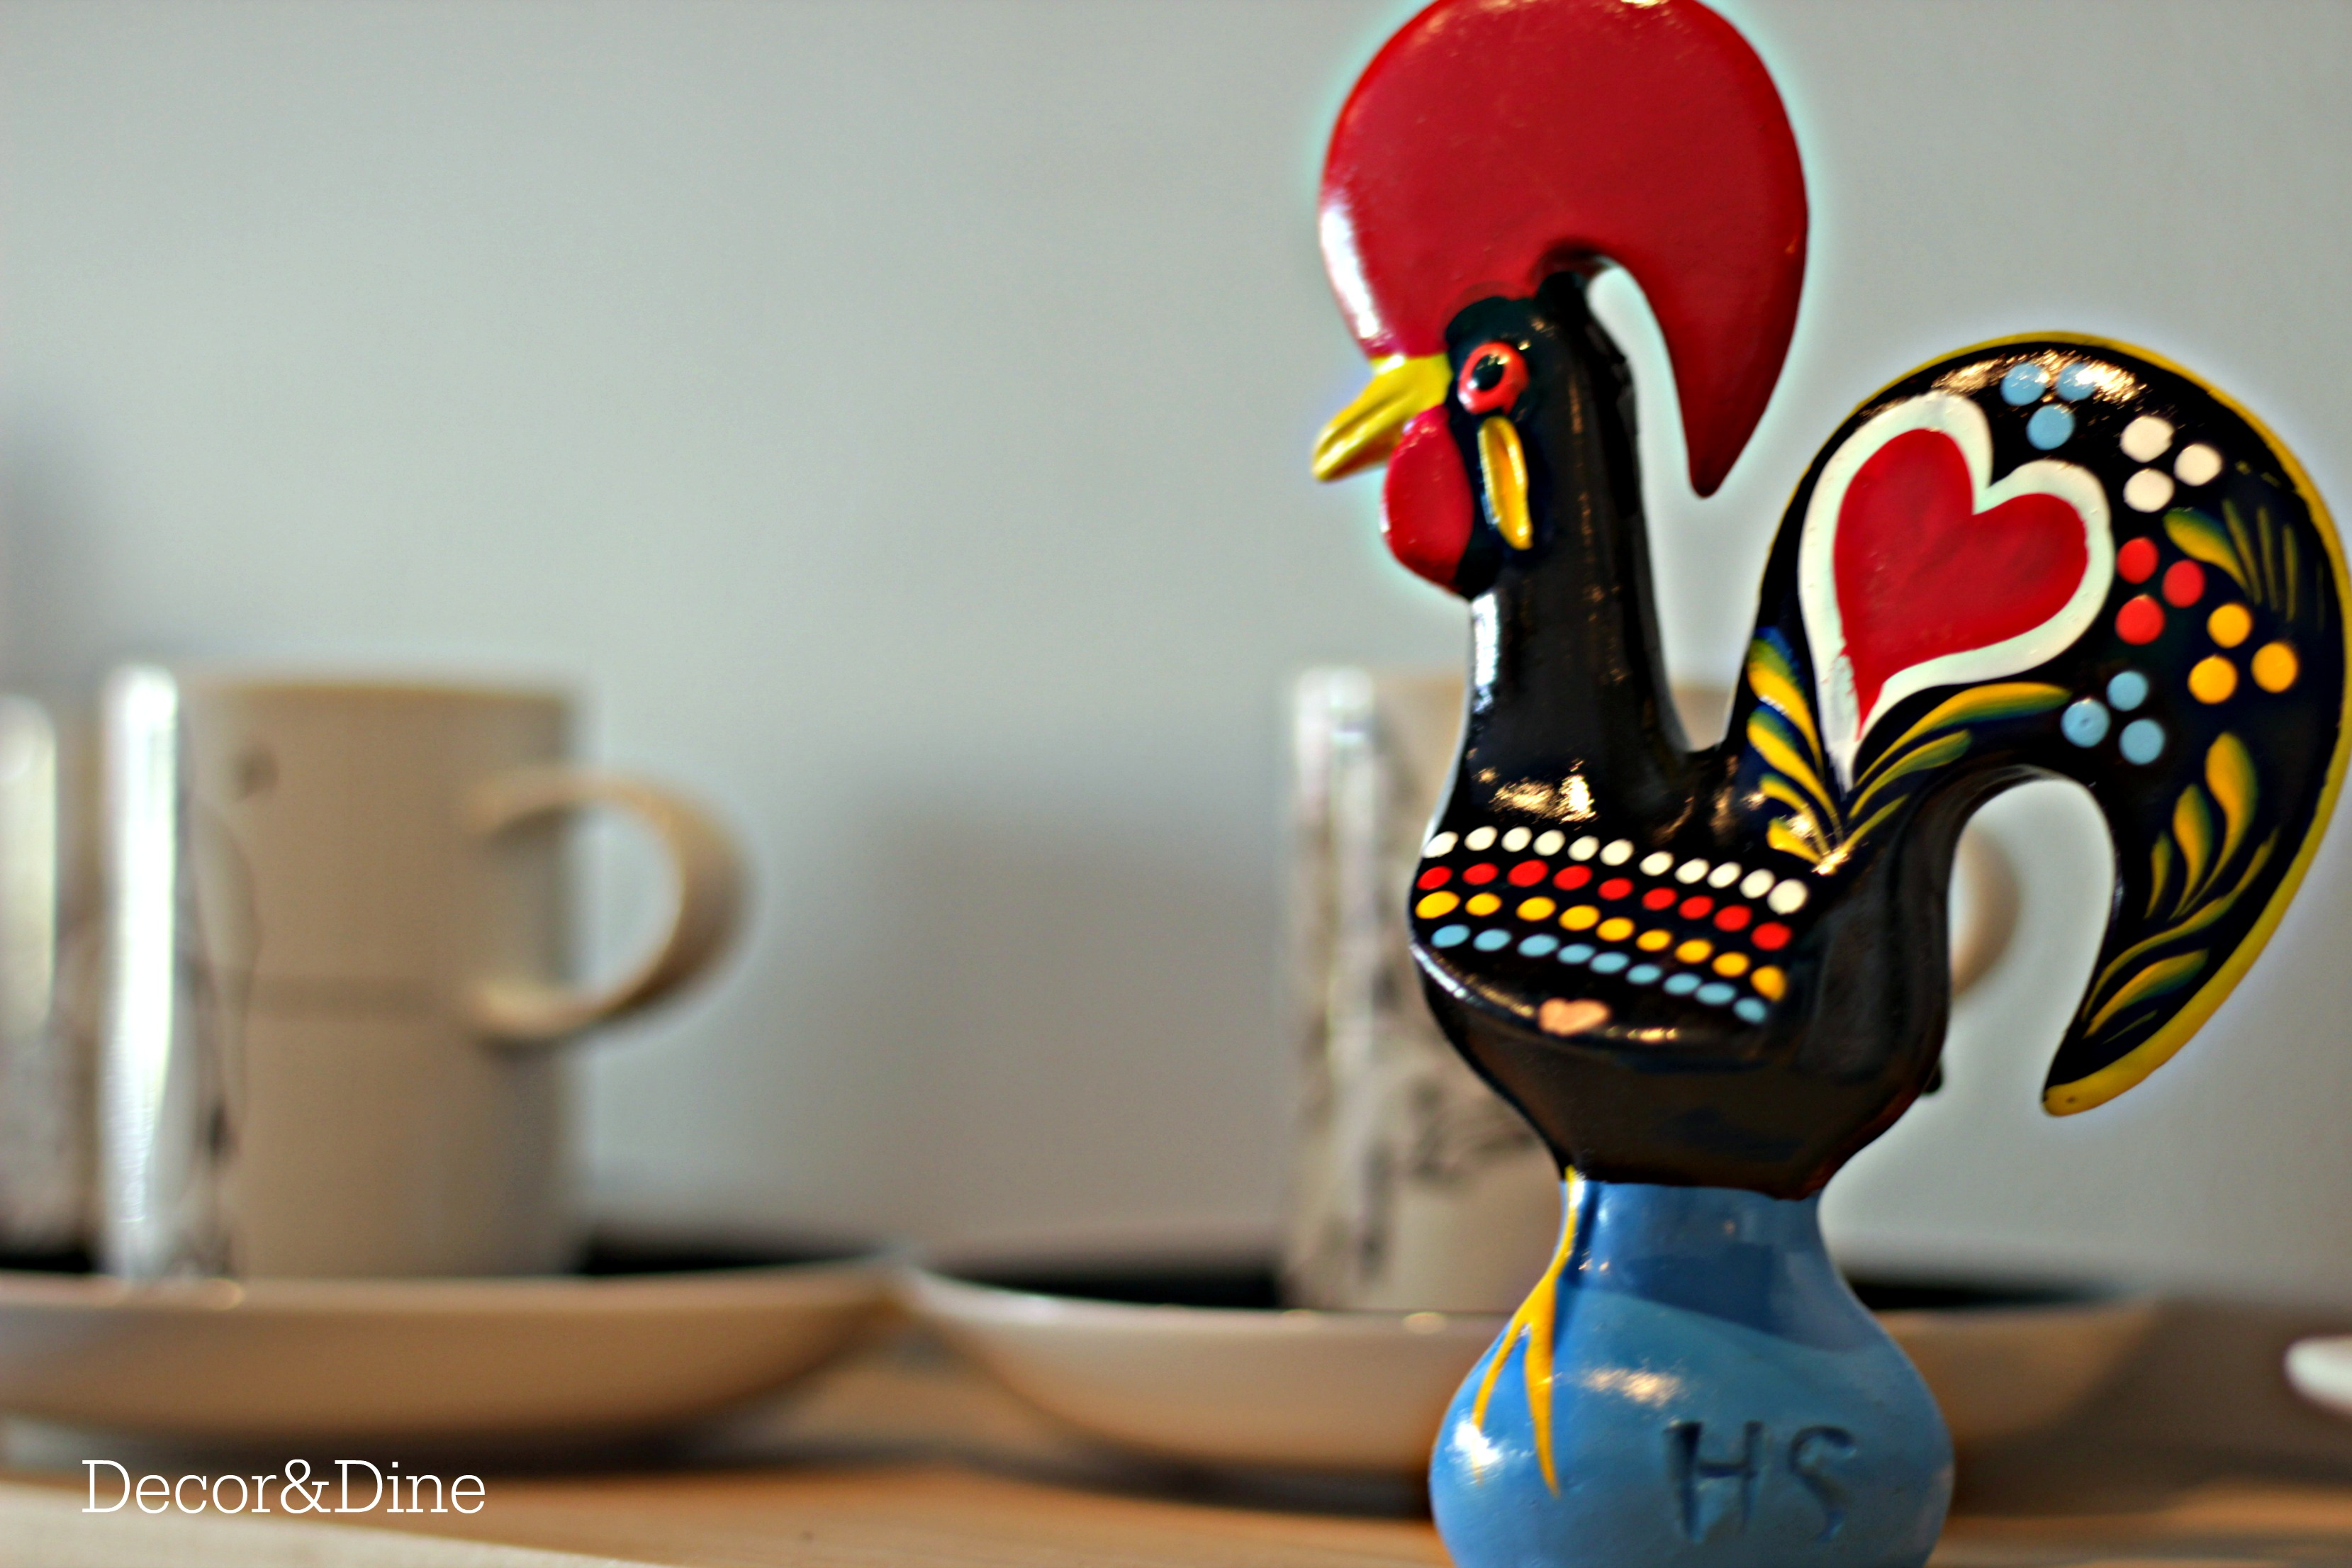 The Barcelos Rooster Decor And Dine